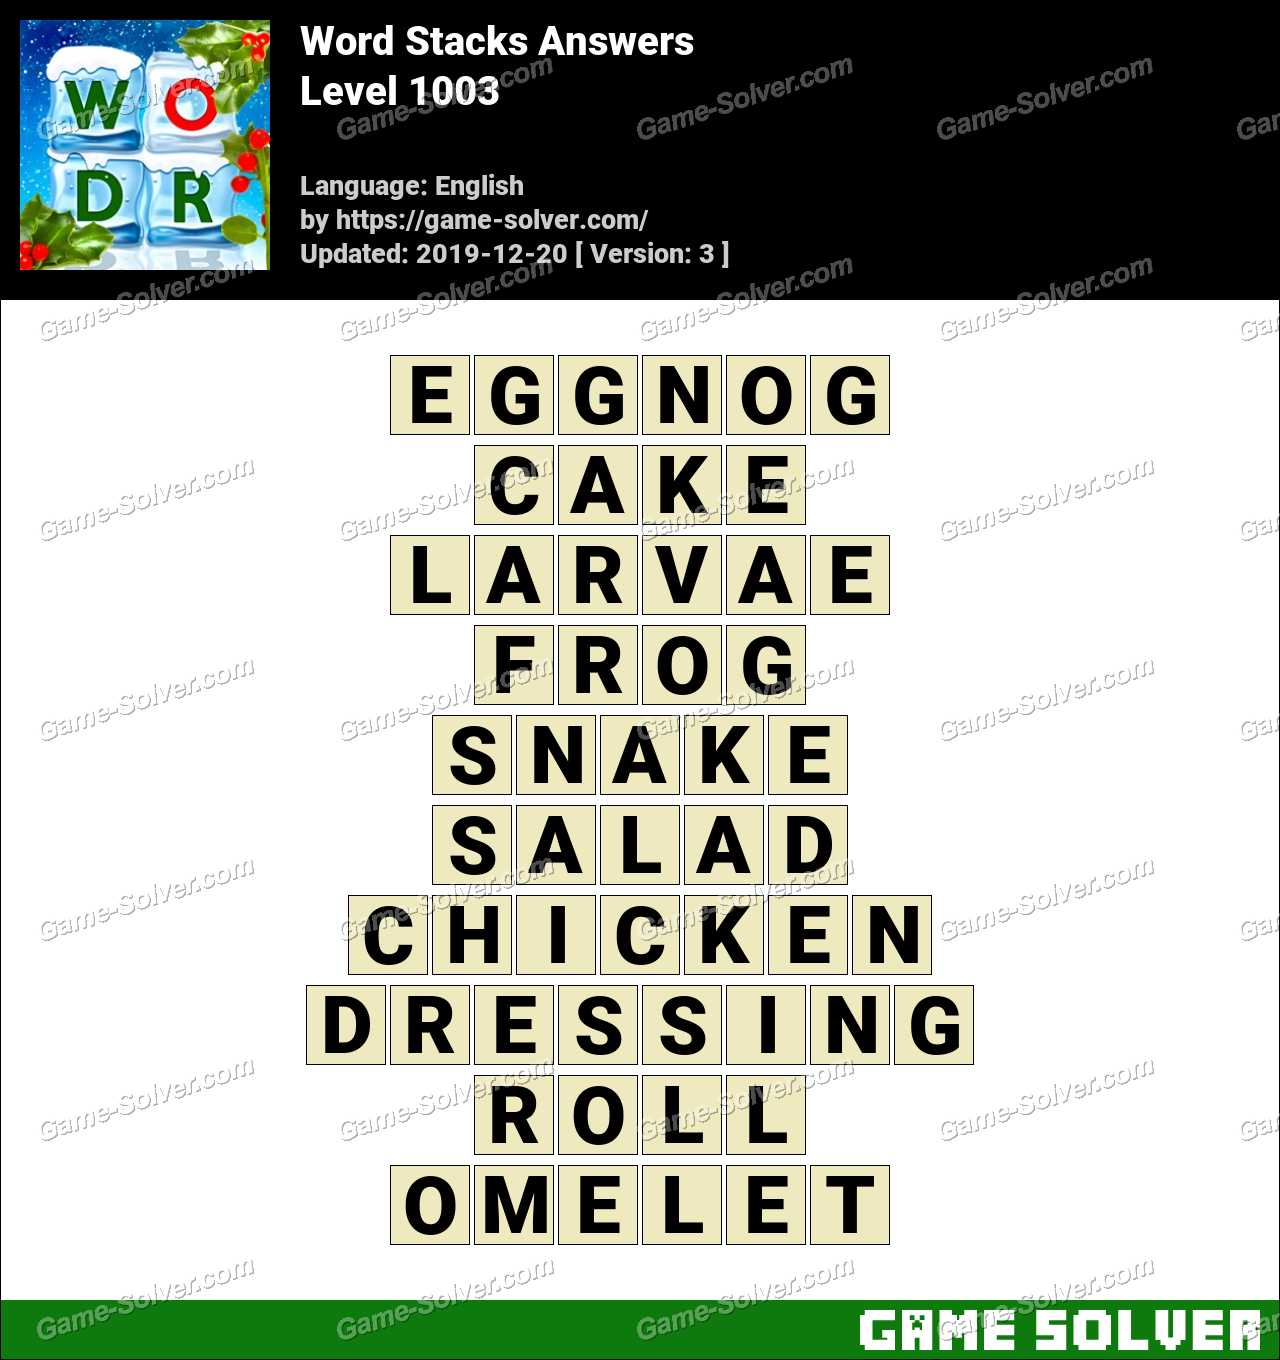 Word Stacks Level 1003 Answers